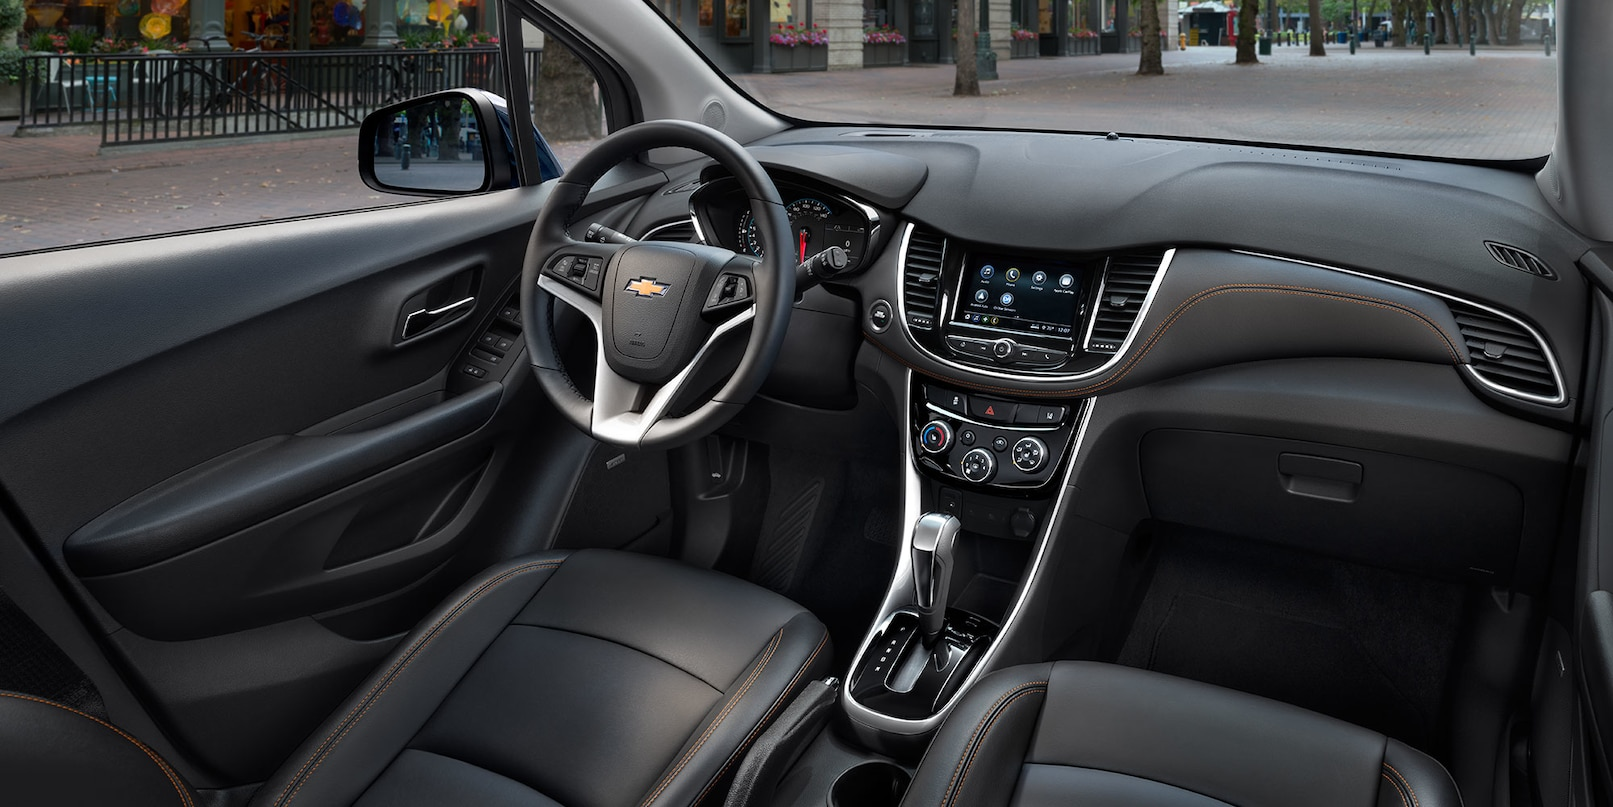 Interior of the 2019 Trax